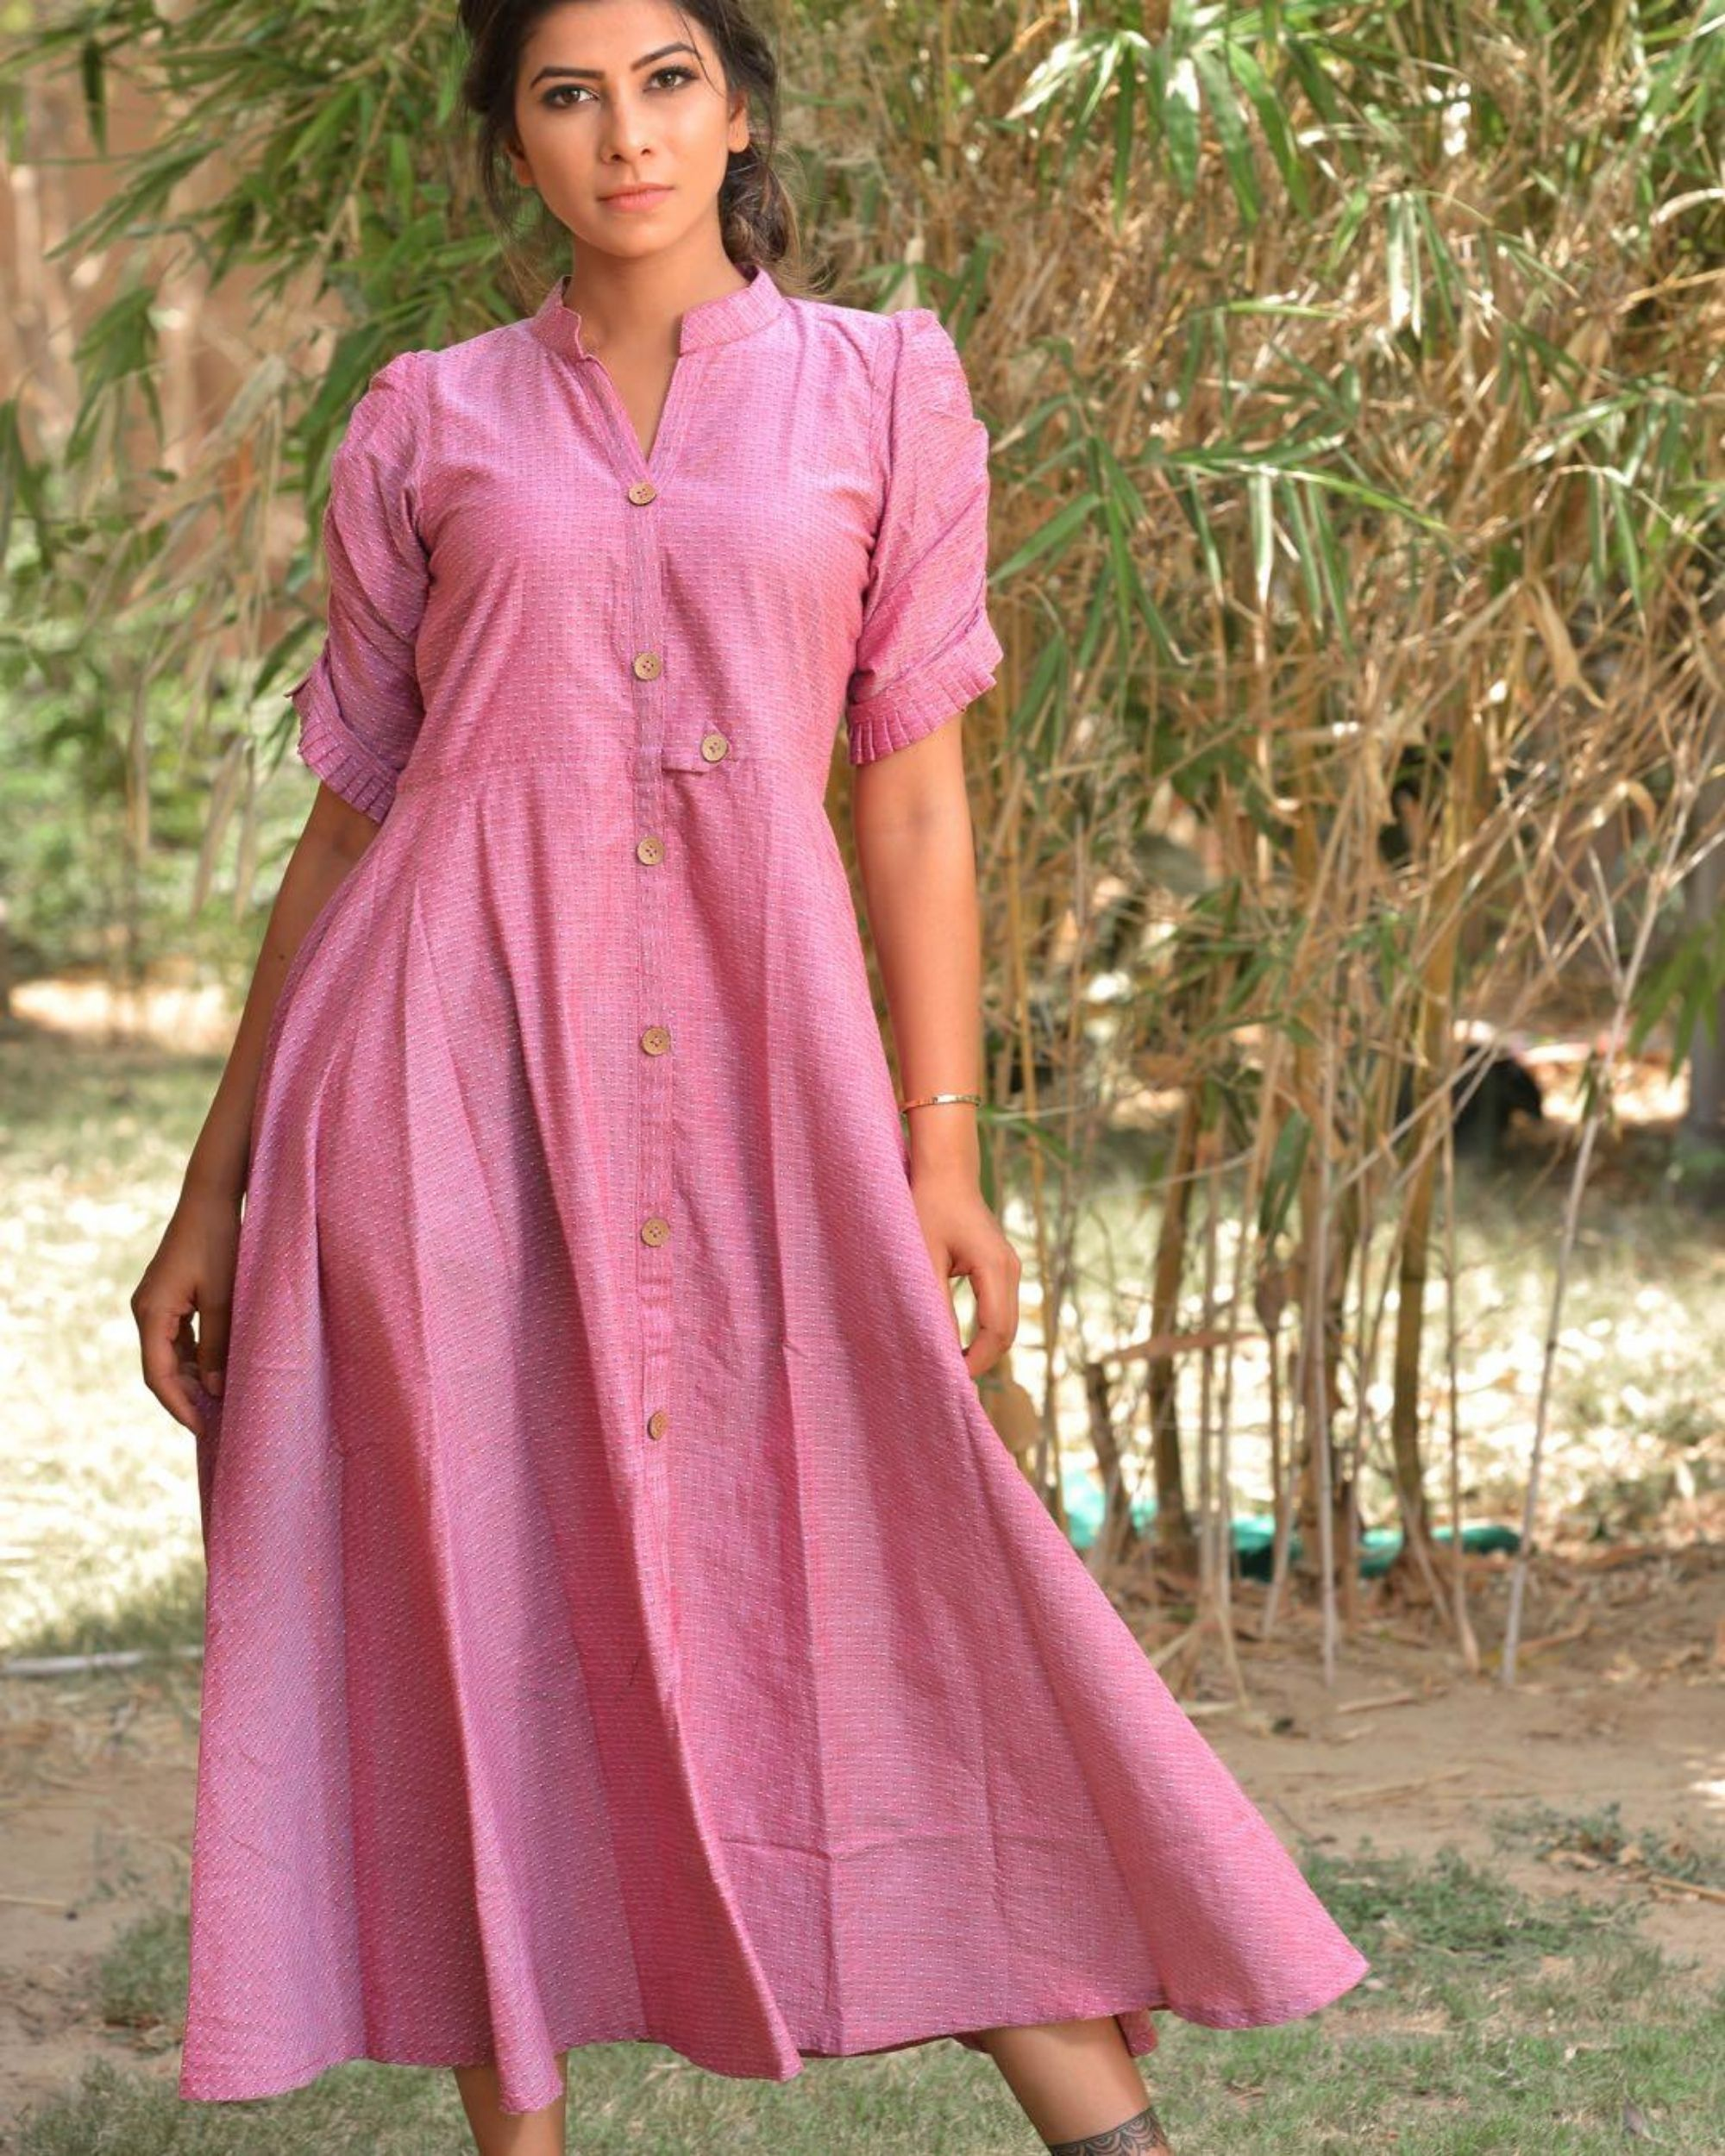 Retro pink buttoned dress